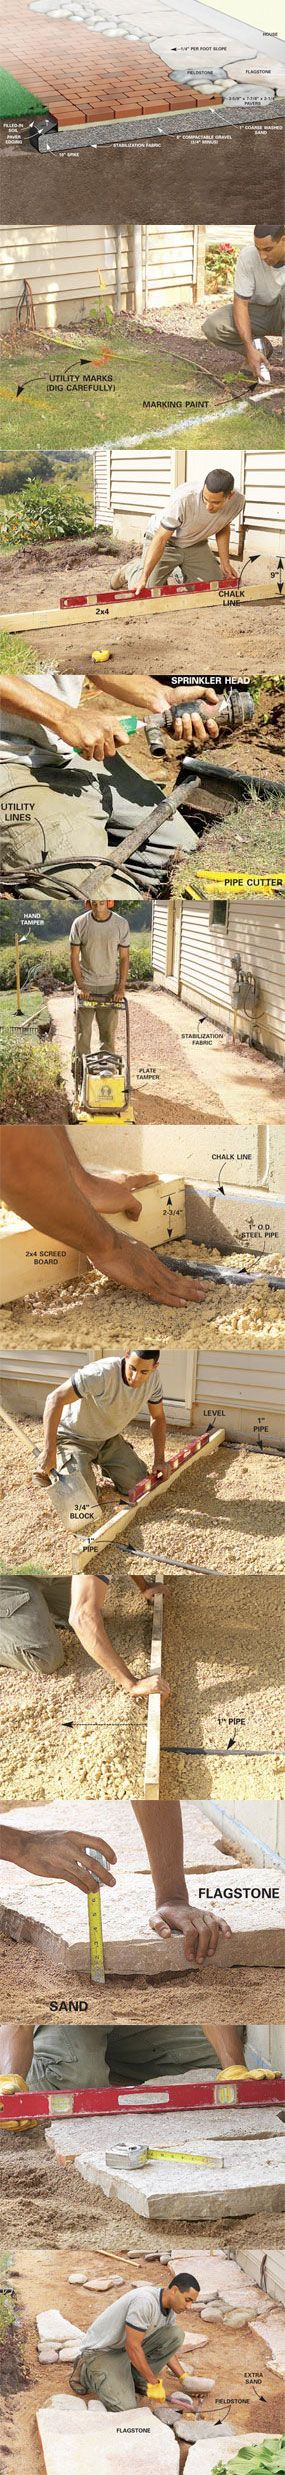 With a little imagination and a lot of muscle, you can build this walk in a three-day weekend. Get all the steps at http://www.familyhandyman.com/DIY-Projects/Outdoor-Projects/Garden/Brick-Walkway/how-to-build-pathways-brick-and-stone-pathways/View-All